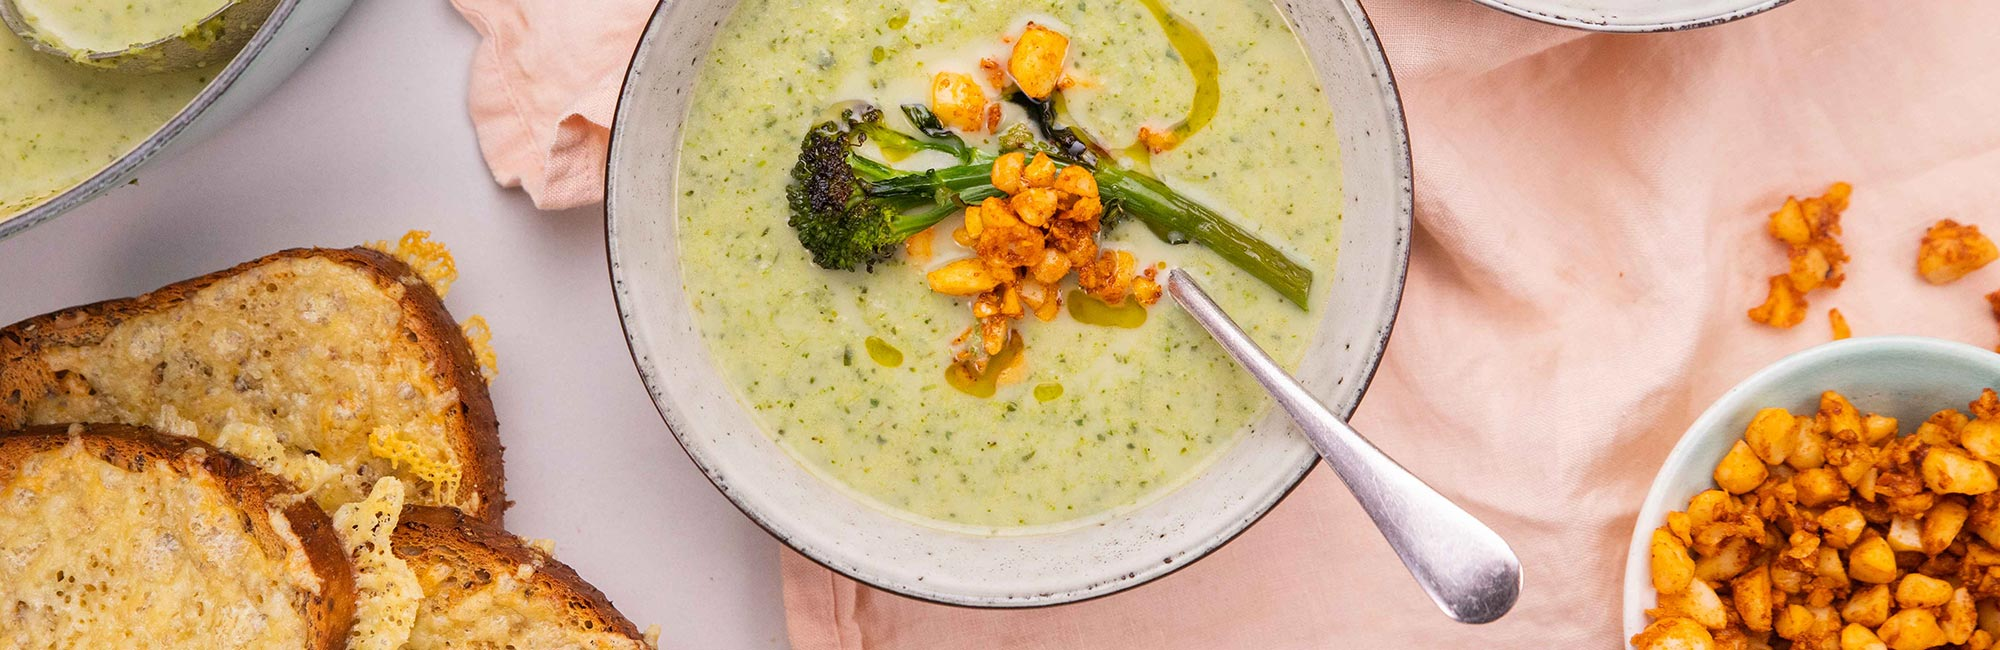 Sweet Stem Broccoli Soup with Smoked Macadamia Crumb Recipe